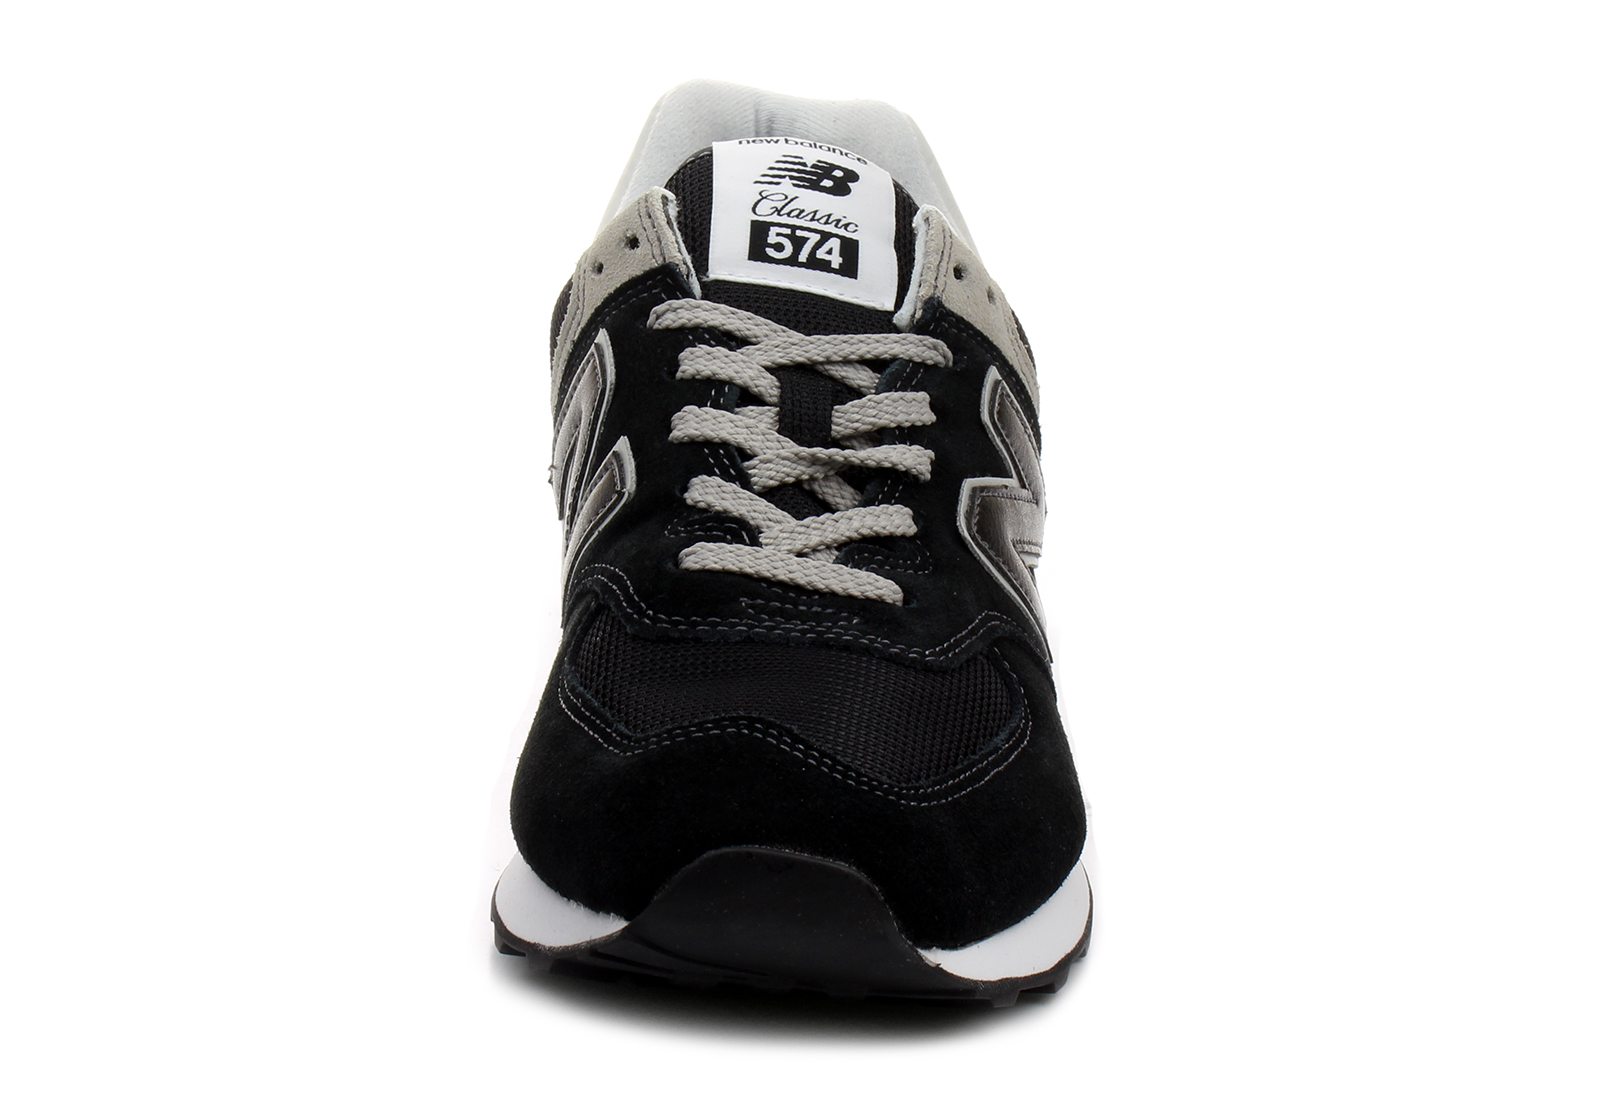 New Balance Shoes - Ml574 - ML574EGK - Online shop for sneakers ... 35f967b7c6